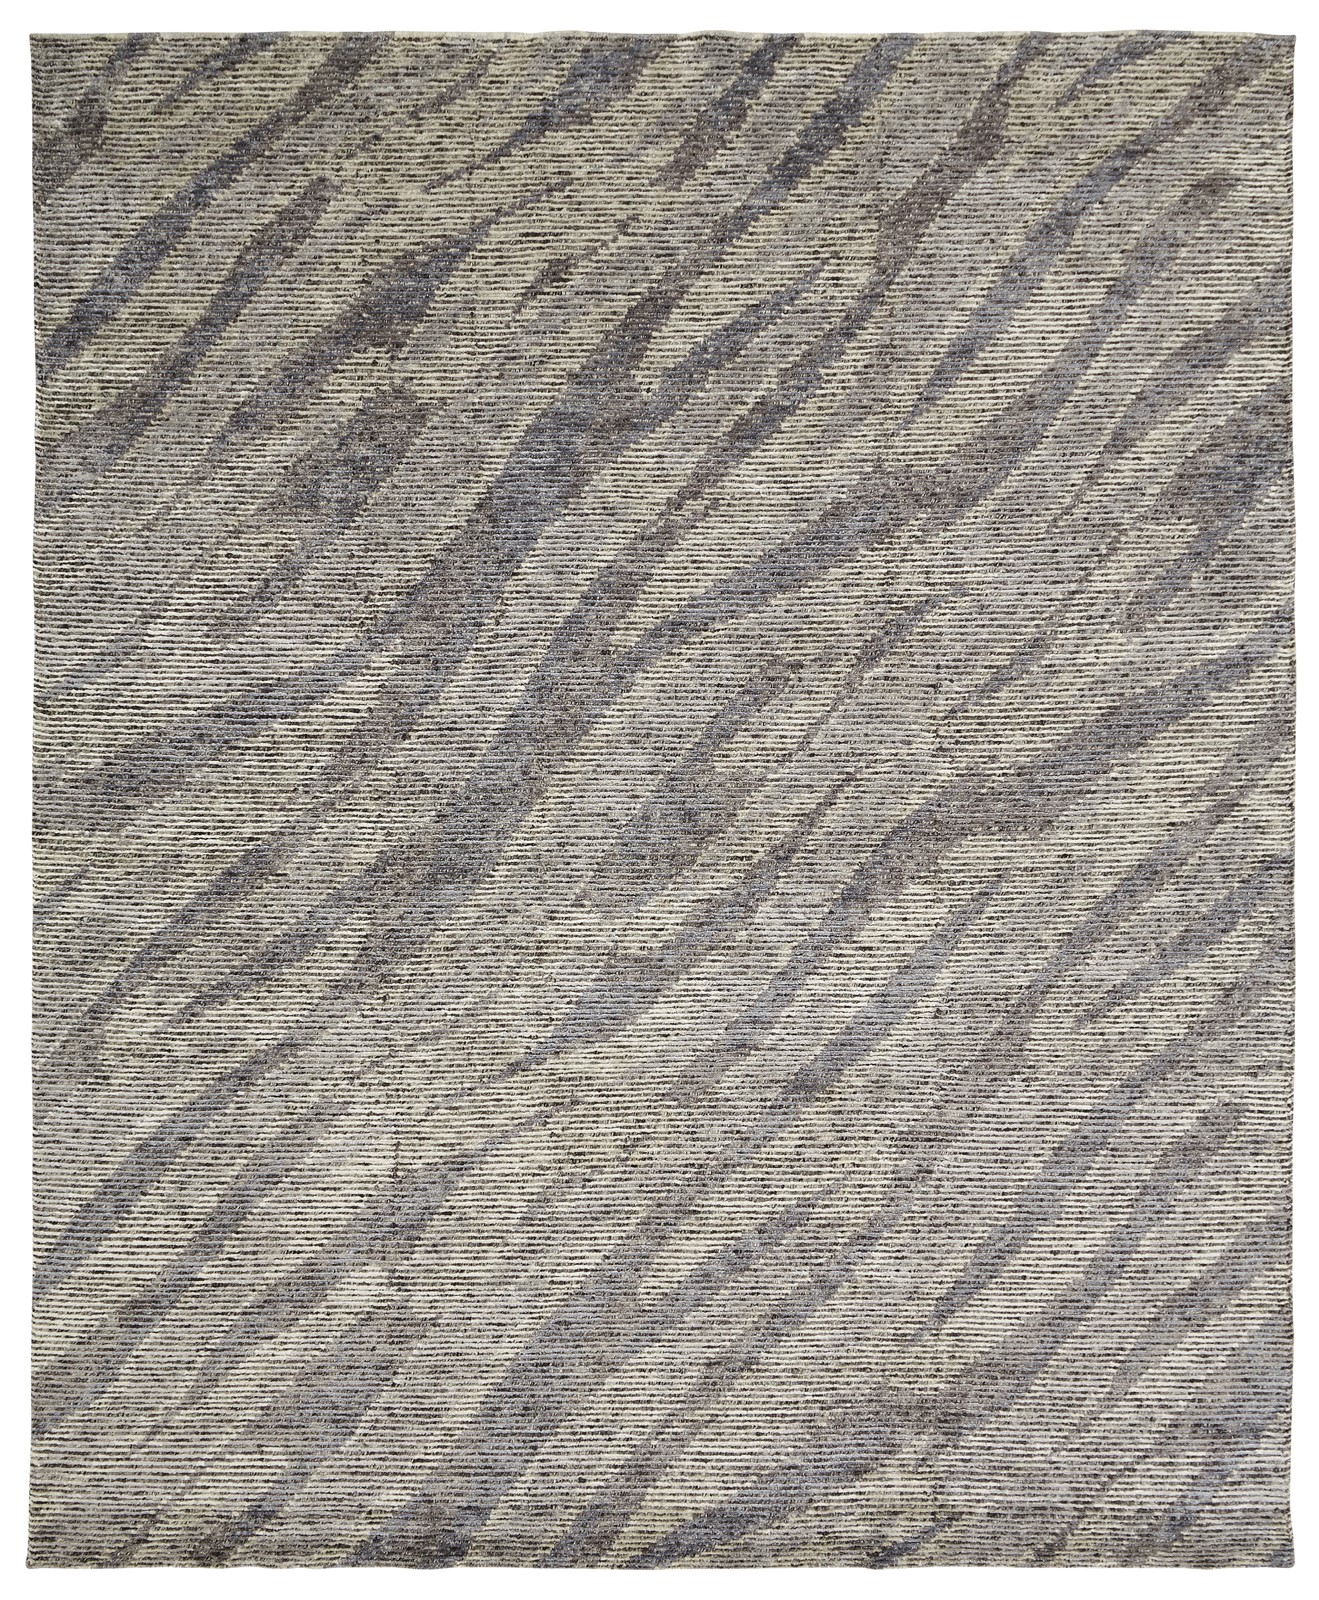 Visions Collection Grey Streak Kirishian Imported Rug Co